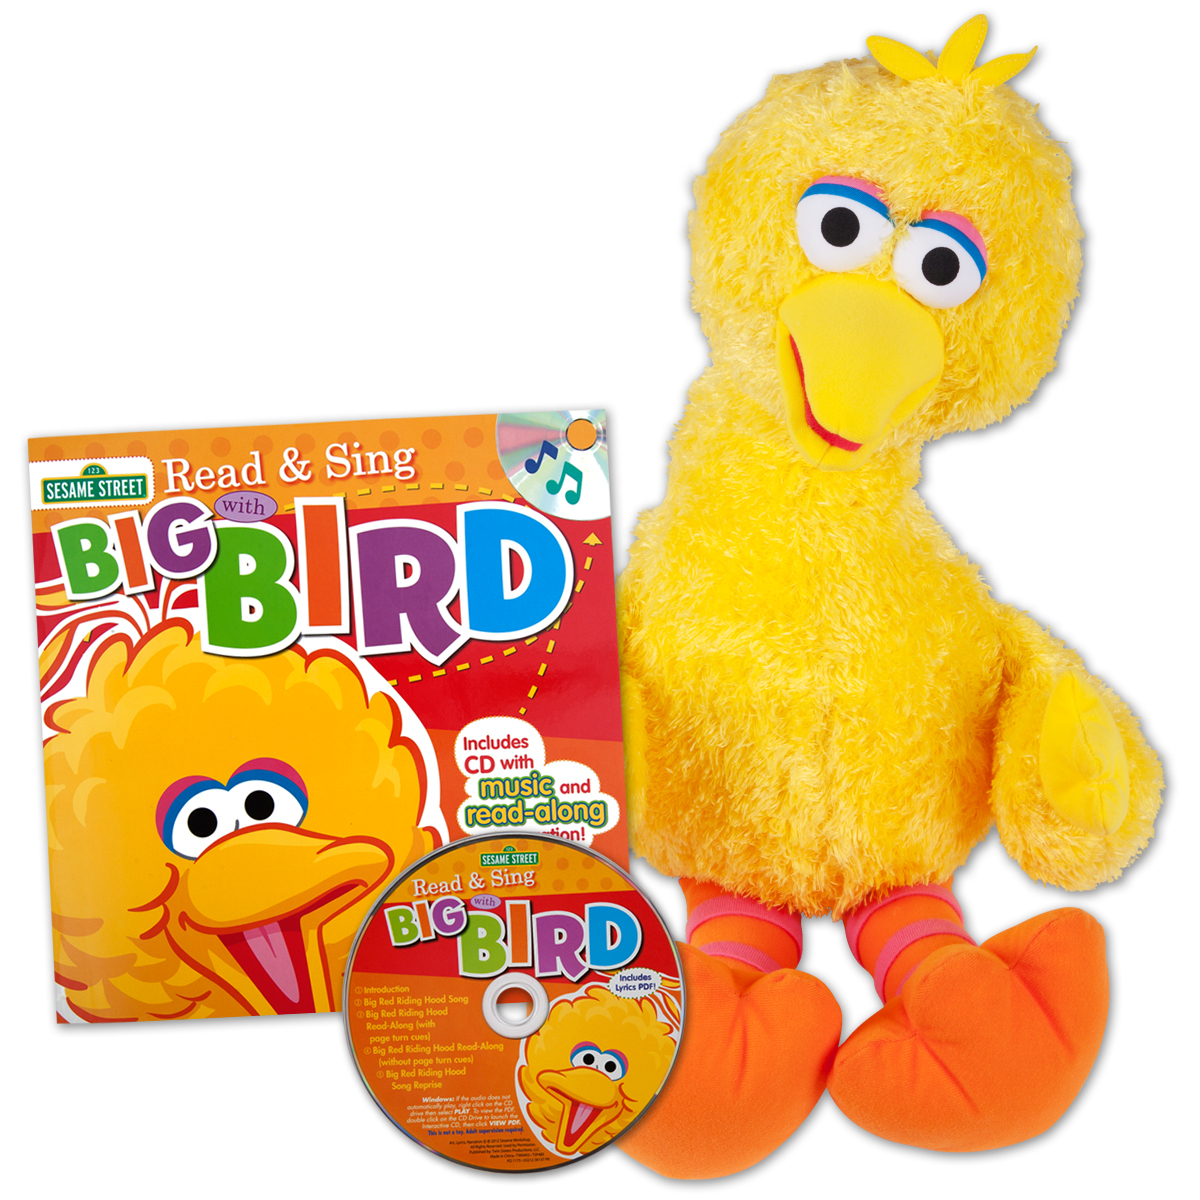 Bopping with Big Bird Bundle